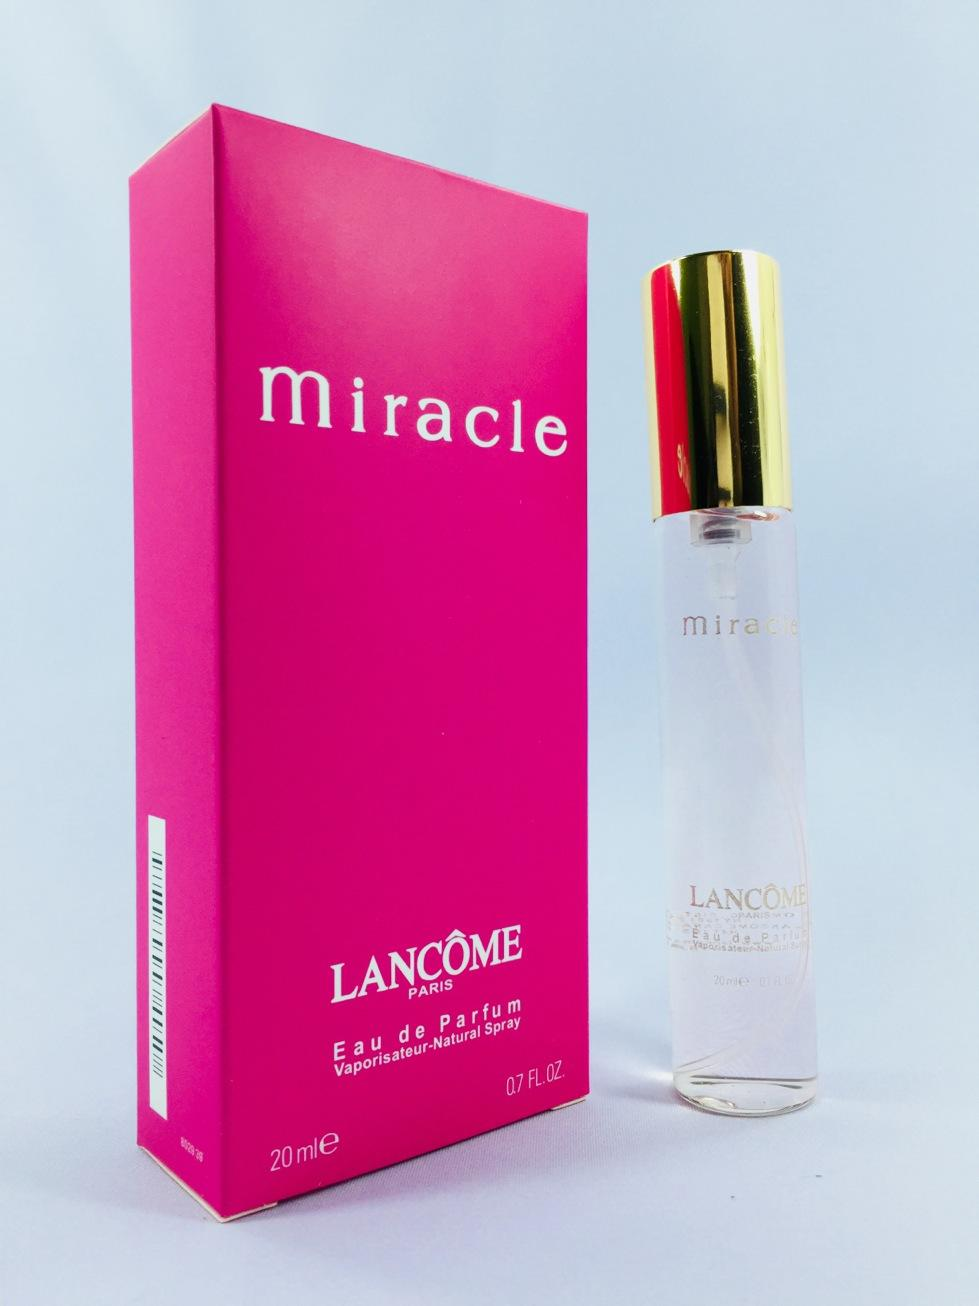 140d67cfb1e Lancome Miracle Eau de Parfum for women 20ml Travel SIze Tester Perfume